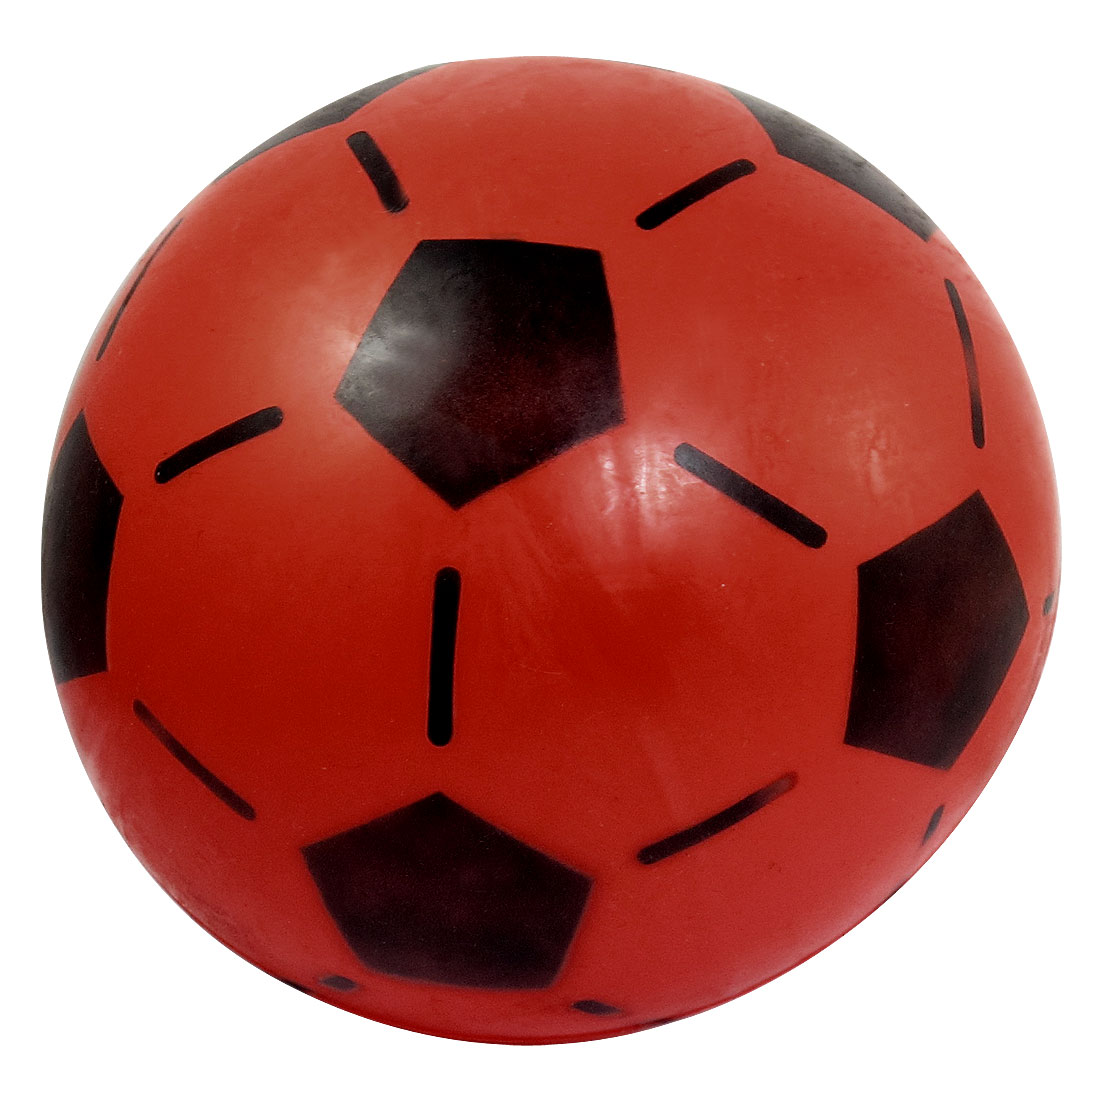 "Red PVC 9.8"" Dia Soccer Football Ball Toy for Children"